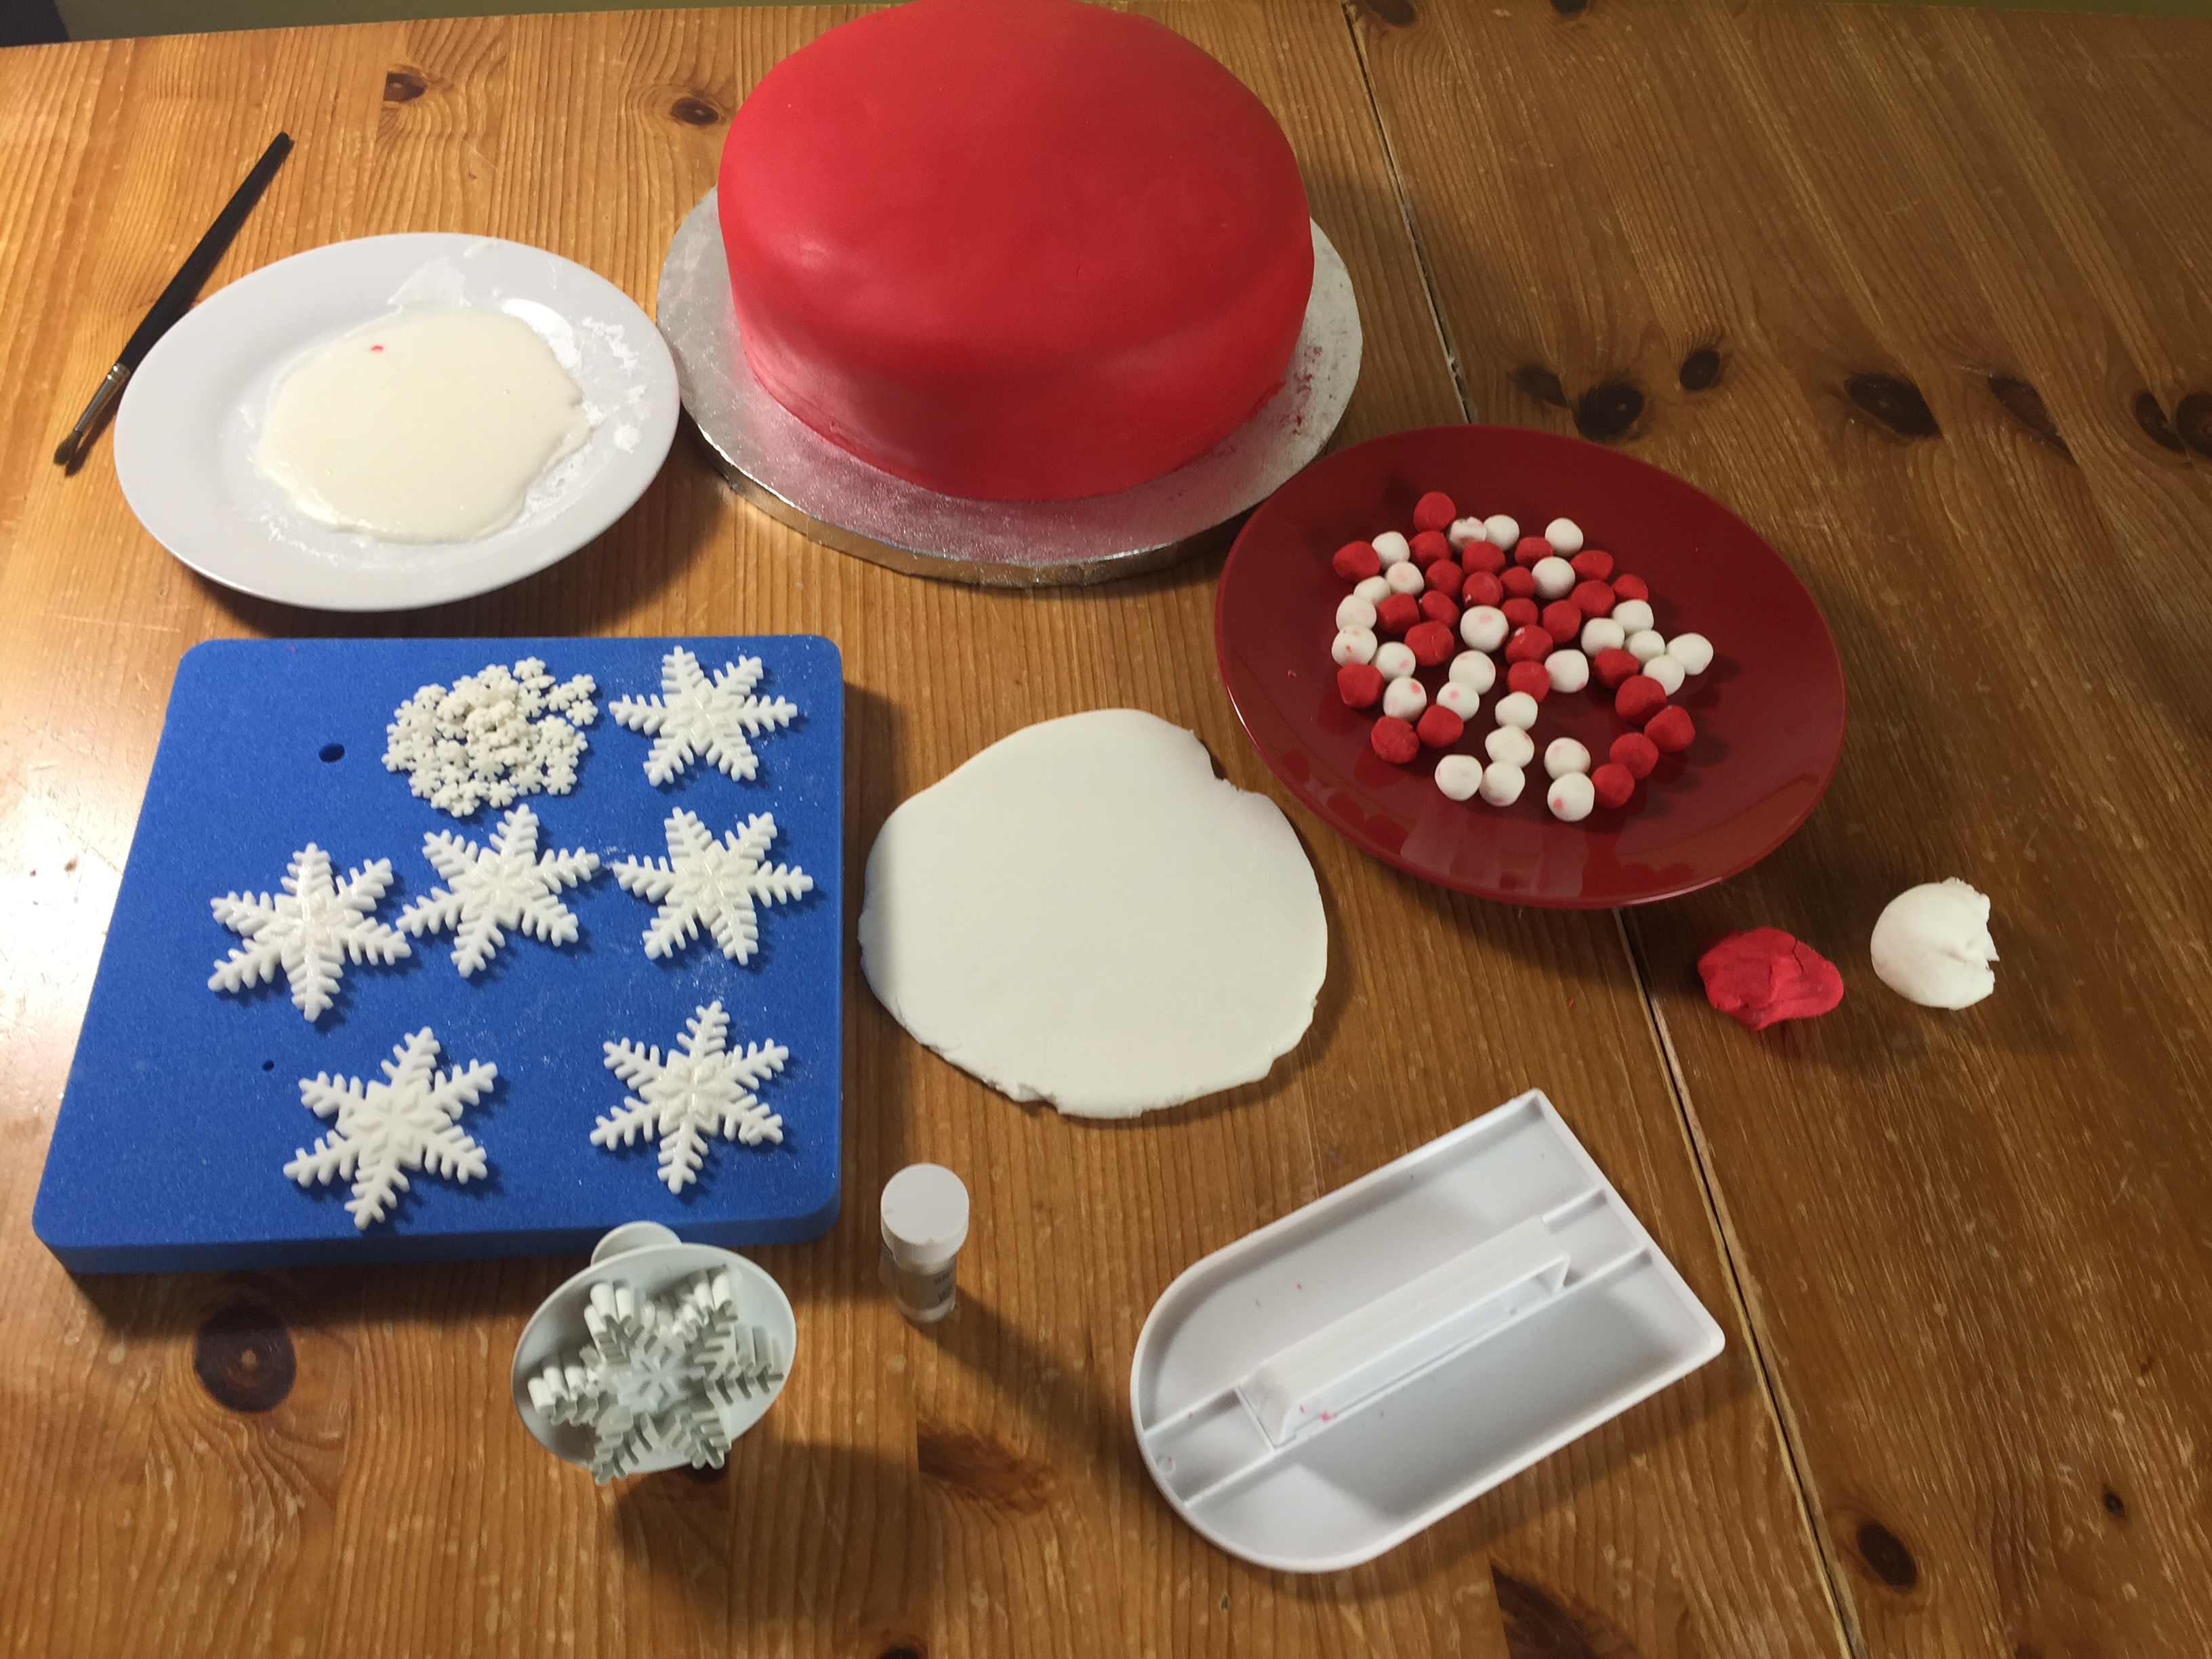 How to make simple fondant decorations